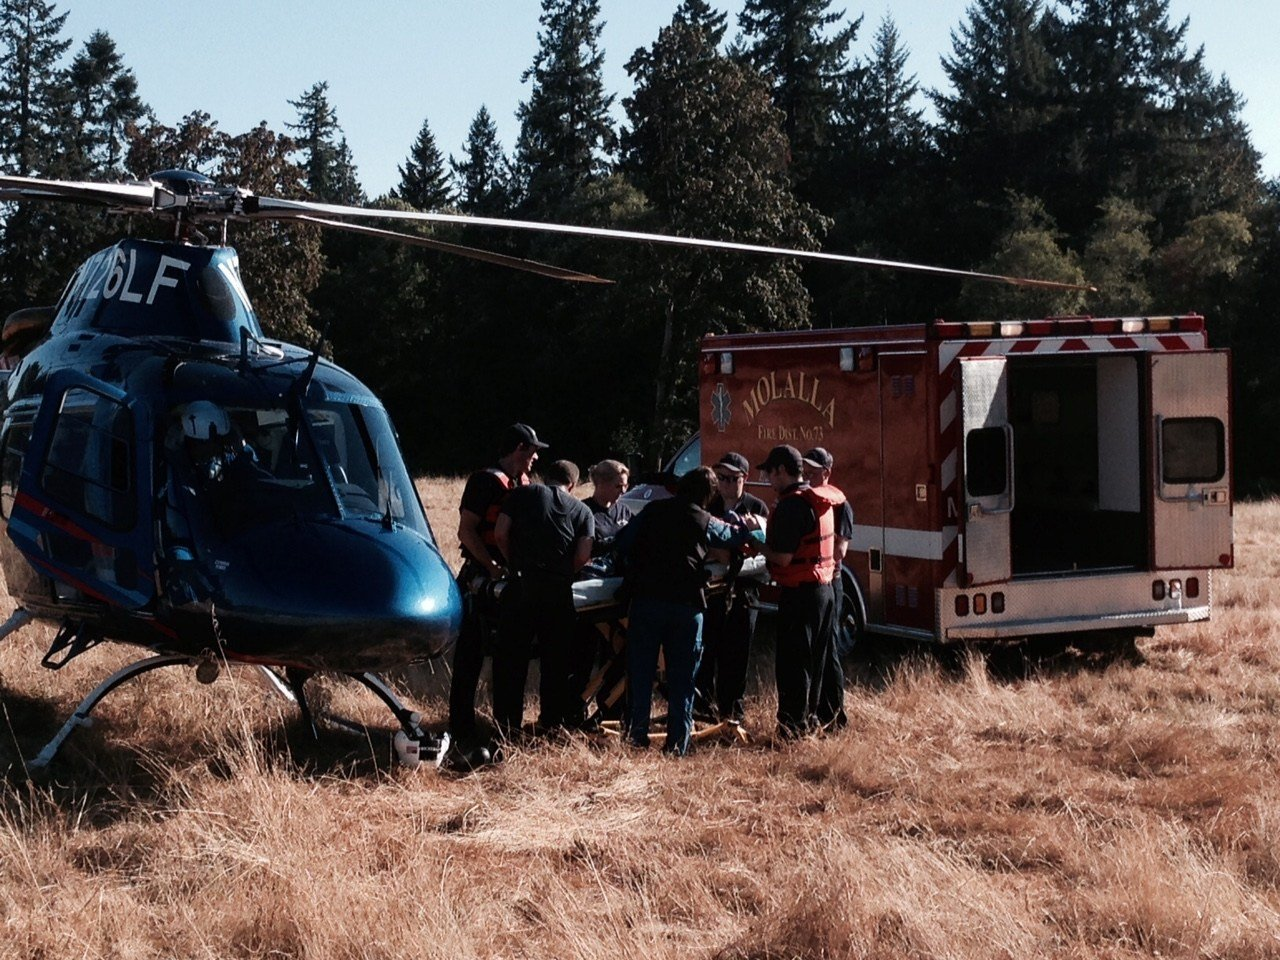 Life Flight took woman to OHSU with serious injuries